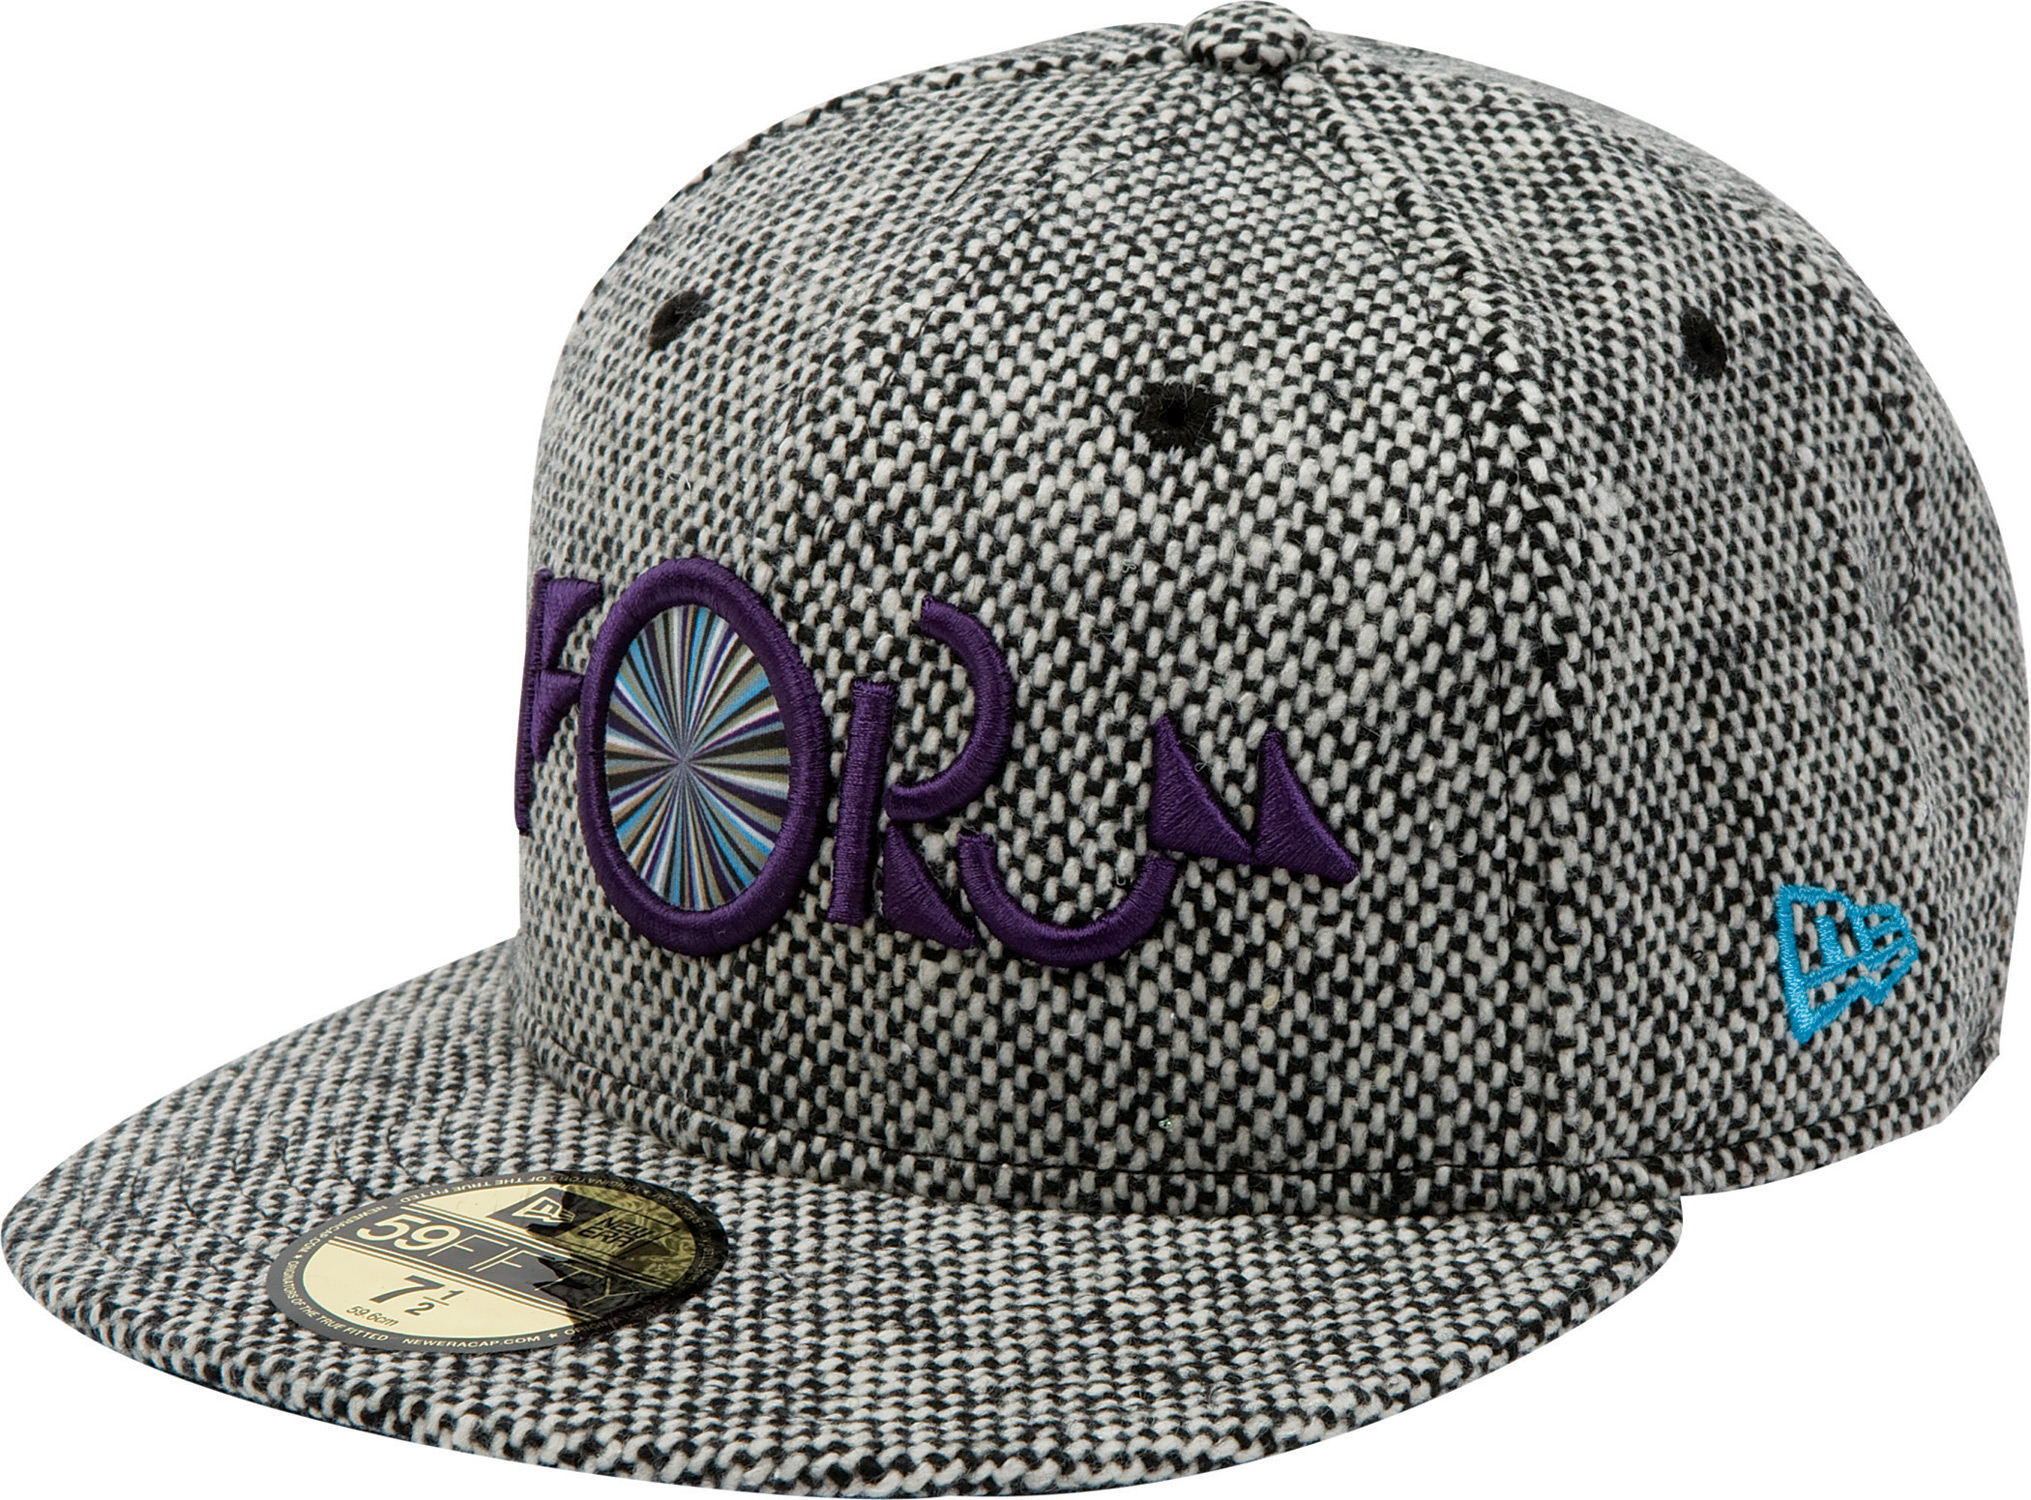 Key Features of the Forum Nugget New Era Cap: 3D embroidery 59/50 100% wool - $19.95